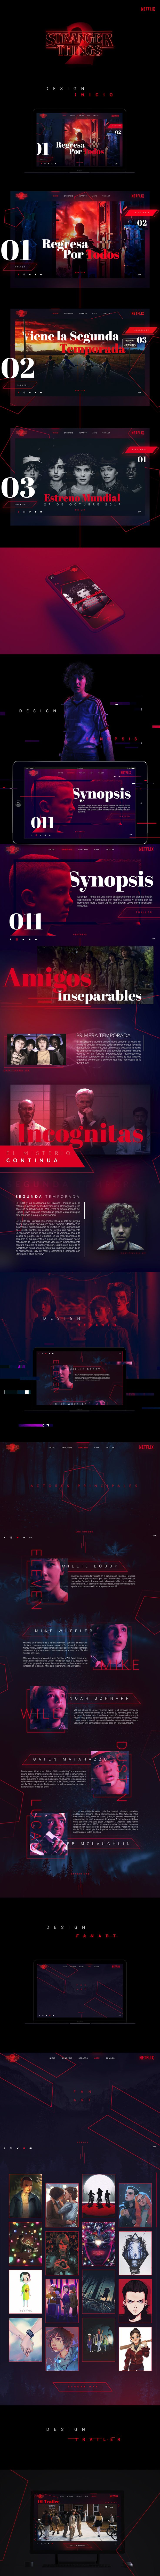 Stranger Things Concept UI - UX Design Web  www.lusaxweb.com.ve